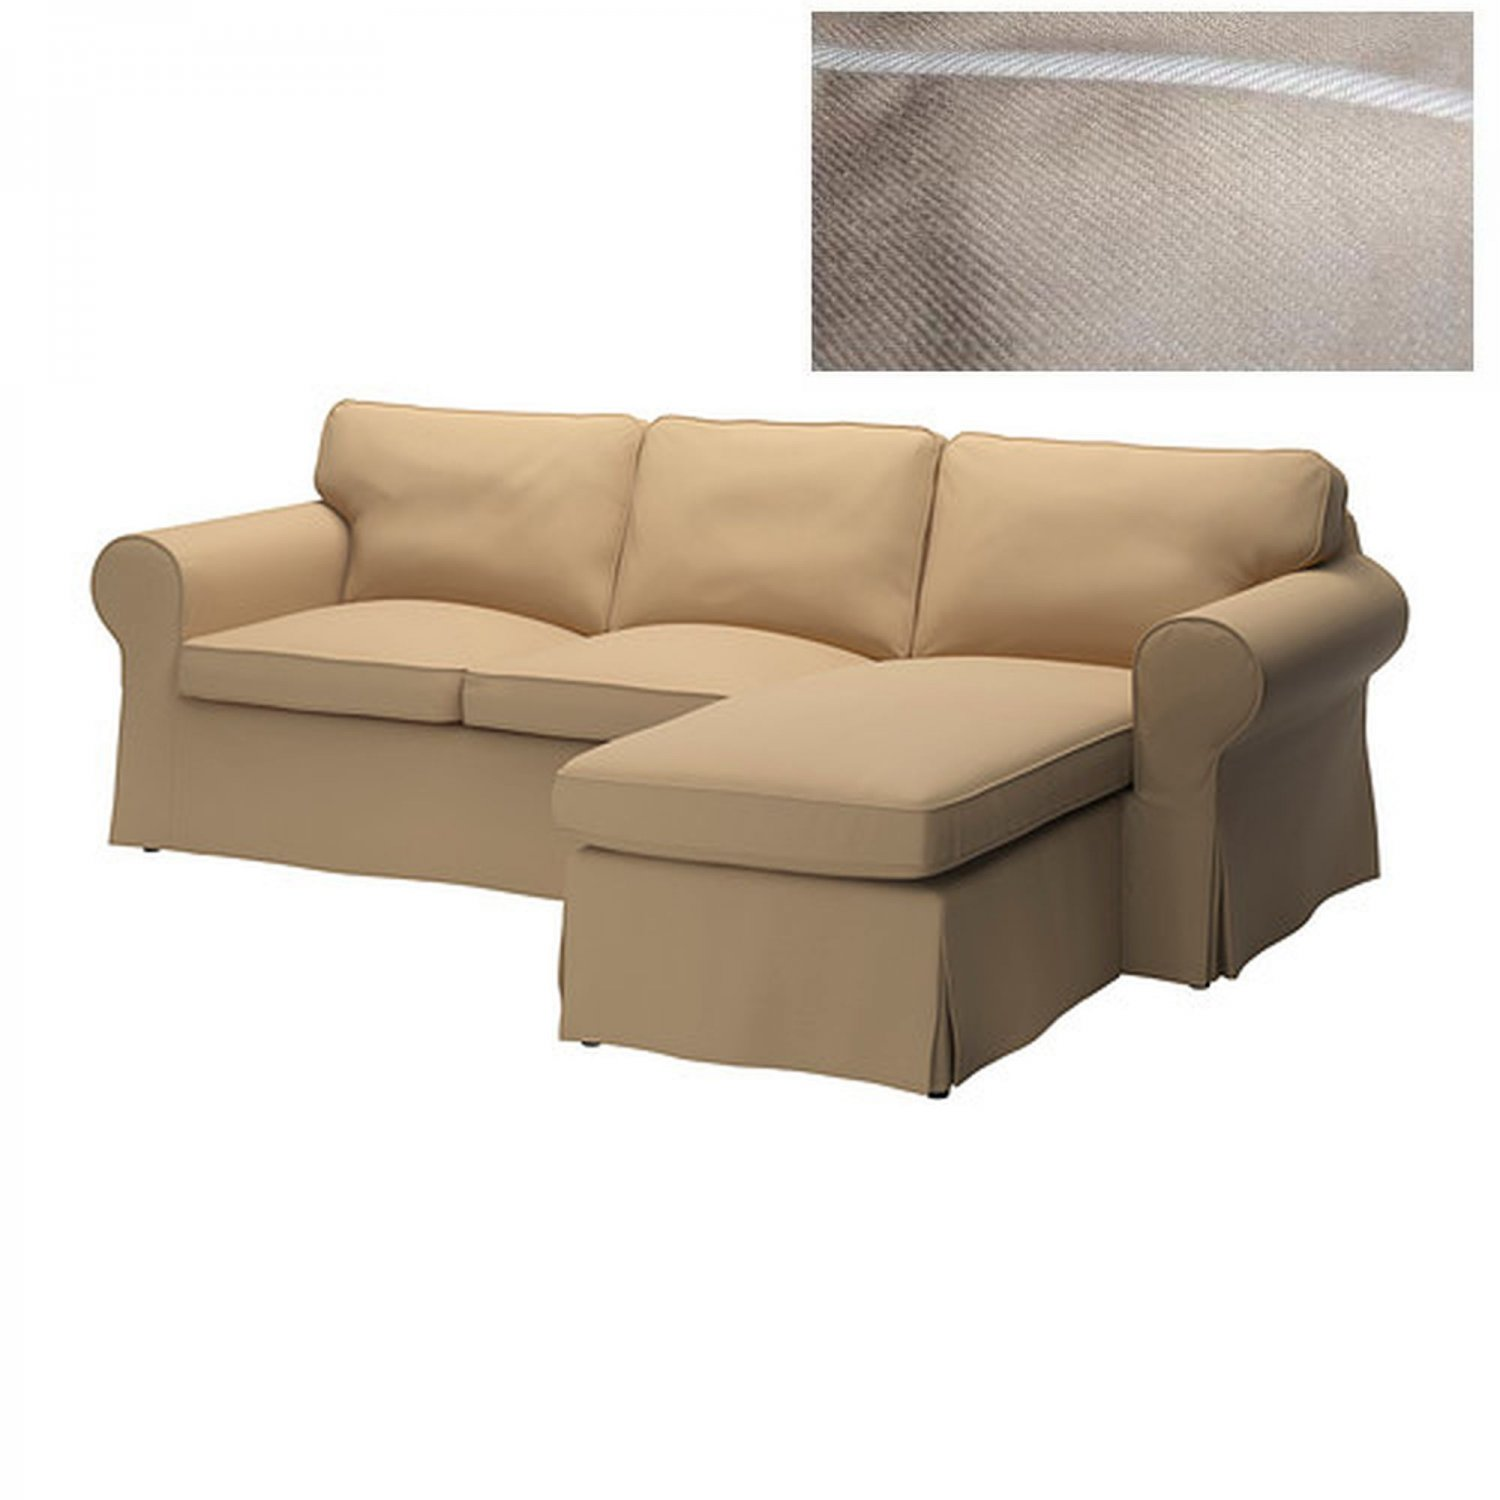 IKEA EKTORP Loveseat sofa with Chaise COVER Slipcover IDEMO BEIGE w Piping